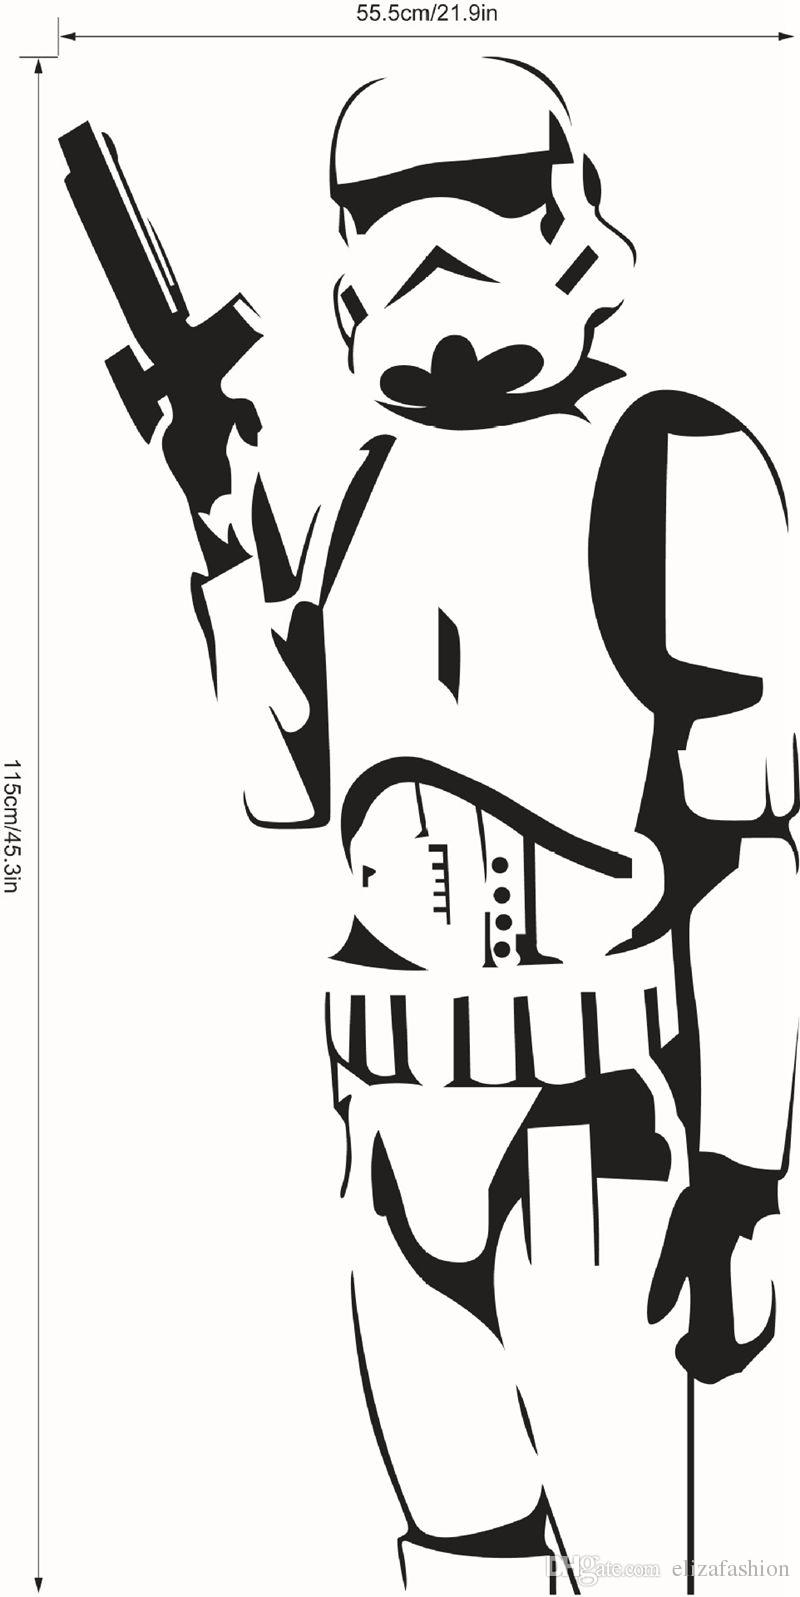 800x1597 Star Wars Large Wall Decals Silhouette Diy Home Decoration Mural